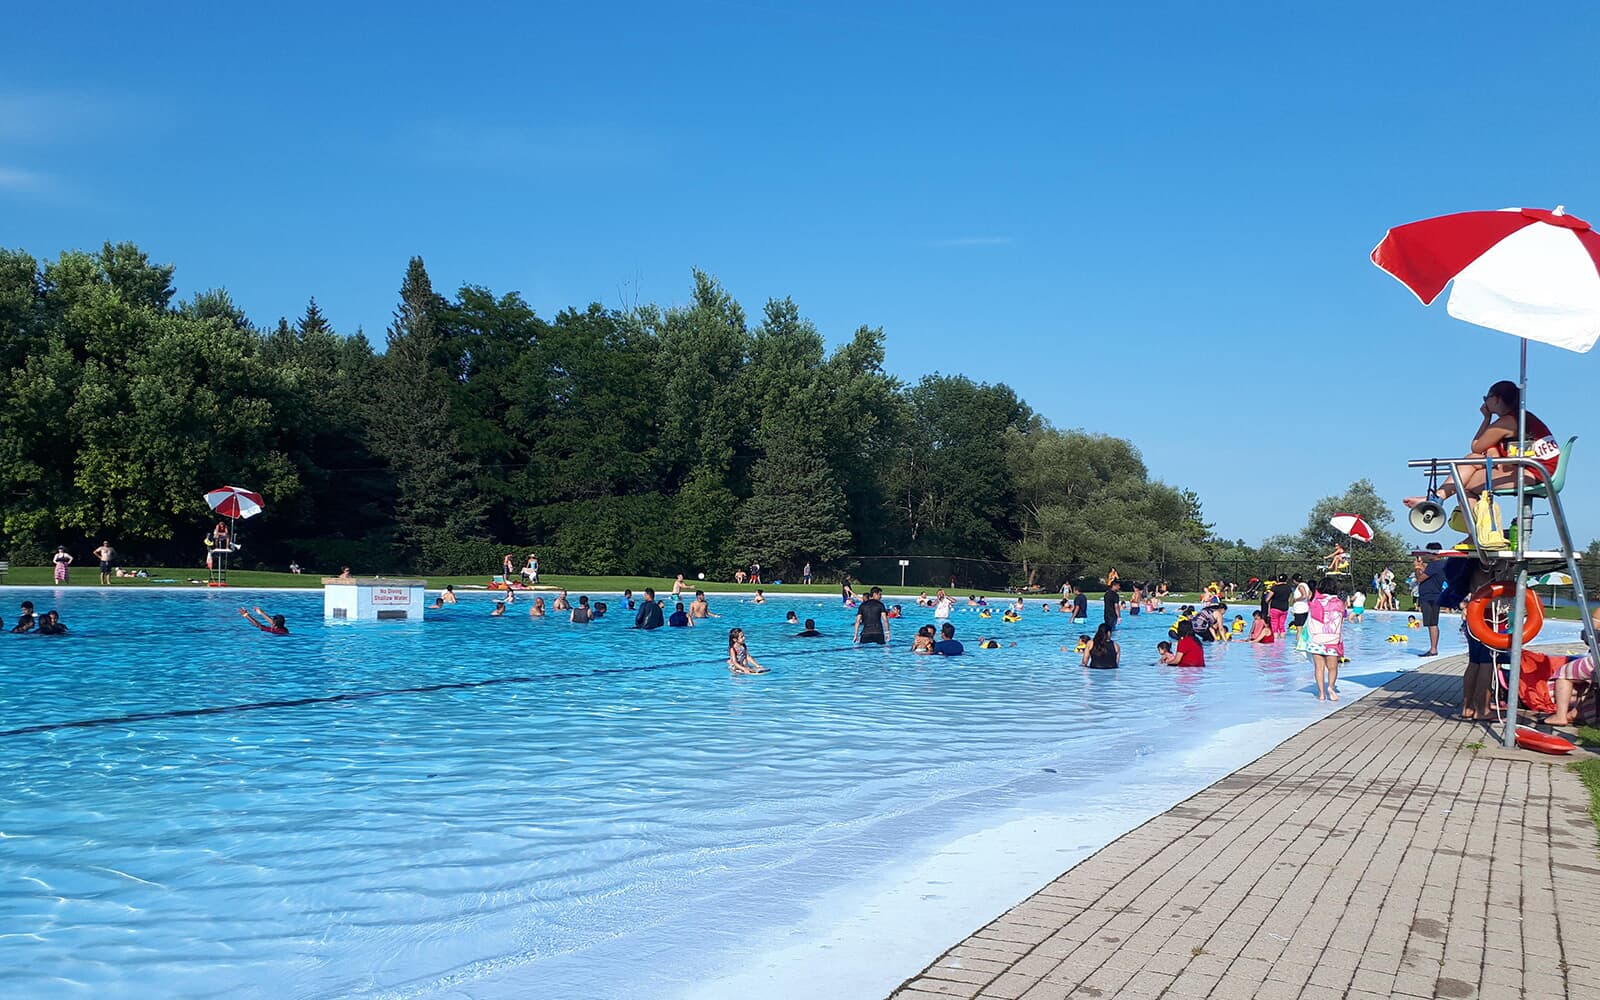 Outdoor Swimming Pool with People in Baxter, Ontario.